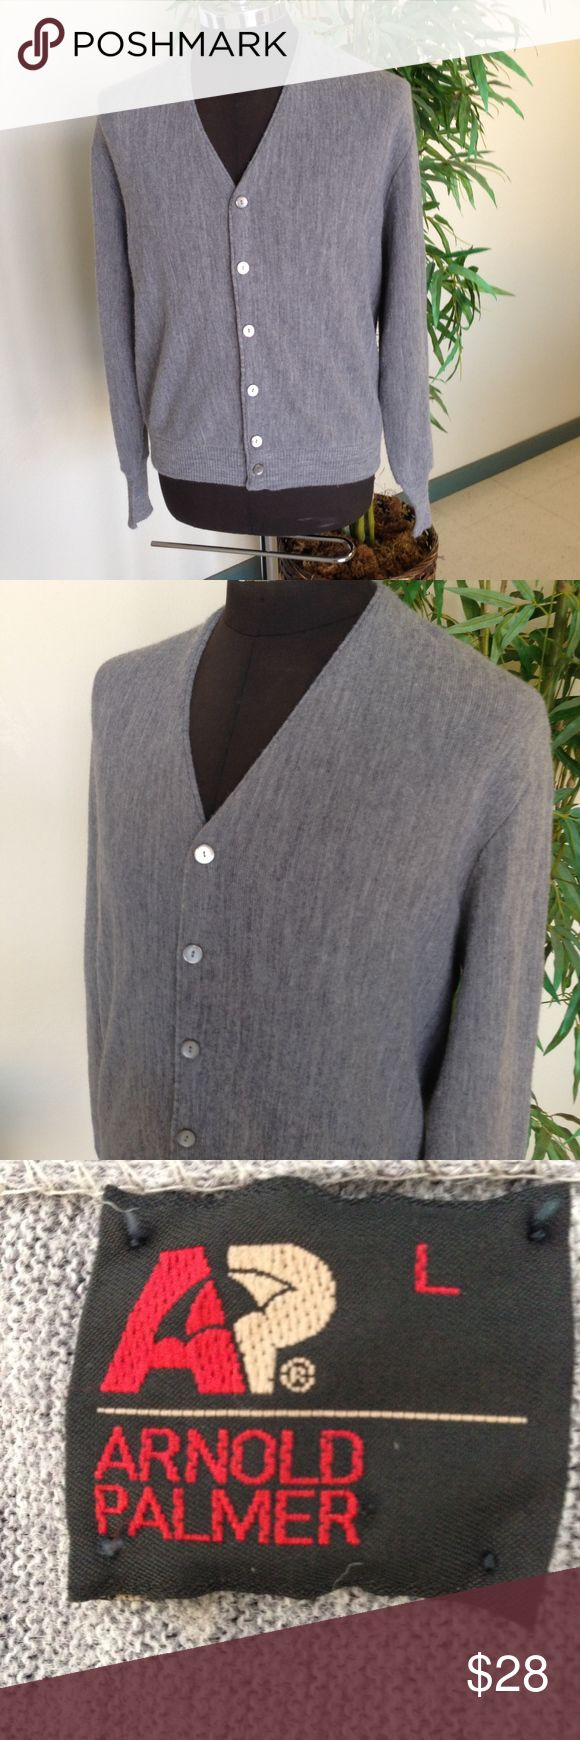 """Vintage Arnold Palmer Gray Cardigan Golf Sweater True vintage gray cardigan sweater - perhaps for a round of golf! Maker:  Arnold Palmer Fabric: 100% Orlon Acrylic Listed Size:  Large Measurements: Shoulder seam to shoulder seam: 19"""" Armpit to armpit:  24"""" Sleeve Length: 26"""" Length: 25"""" Condition:  Very good pre-owned used but not abused vintage condition and coming from a non smoking home. C14 Vintage Sweaters Cardigan"""